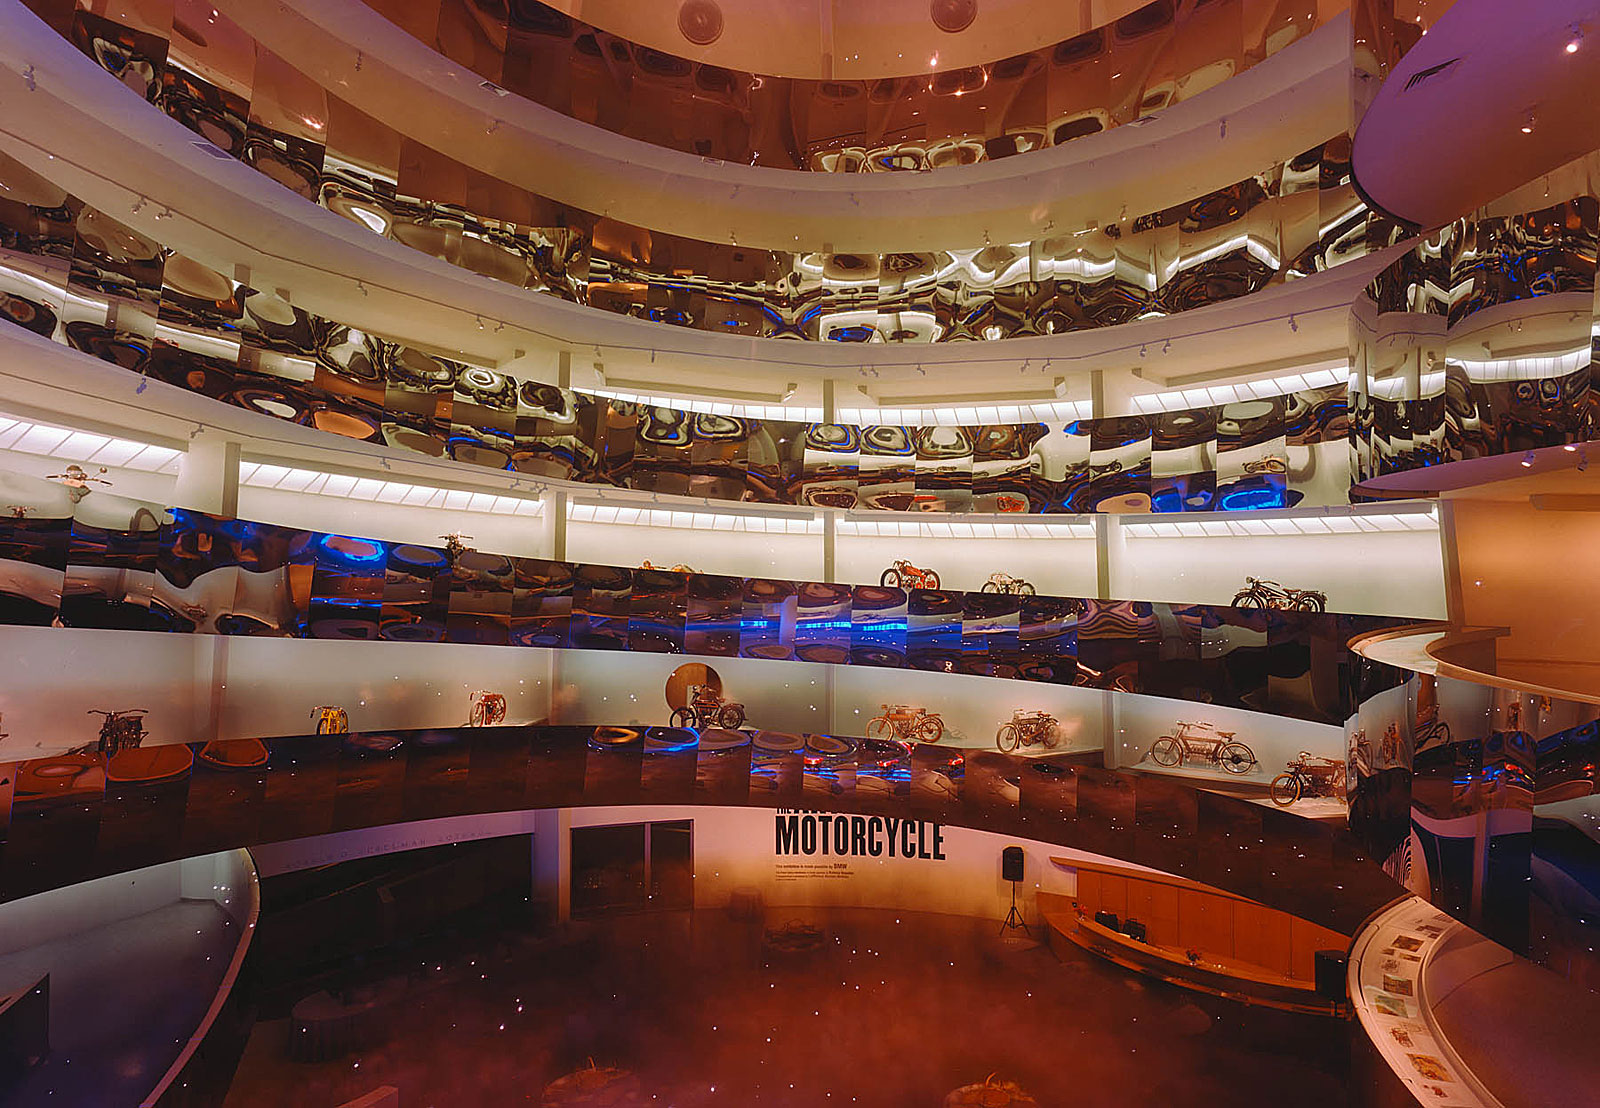 Opening reception, Guggenheim Museum, New York (19.03 - 21.20 Uhr, 26.6.1998)